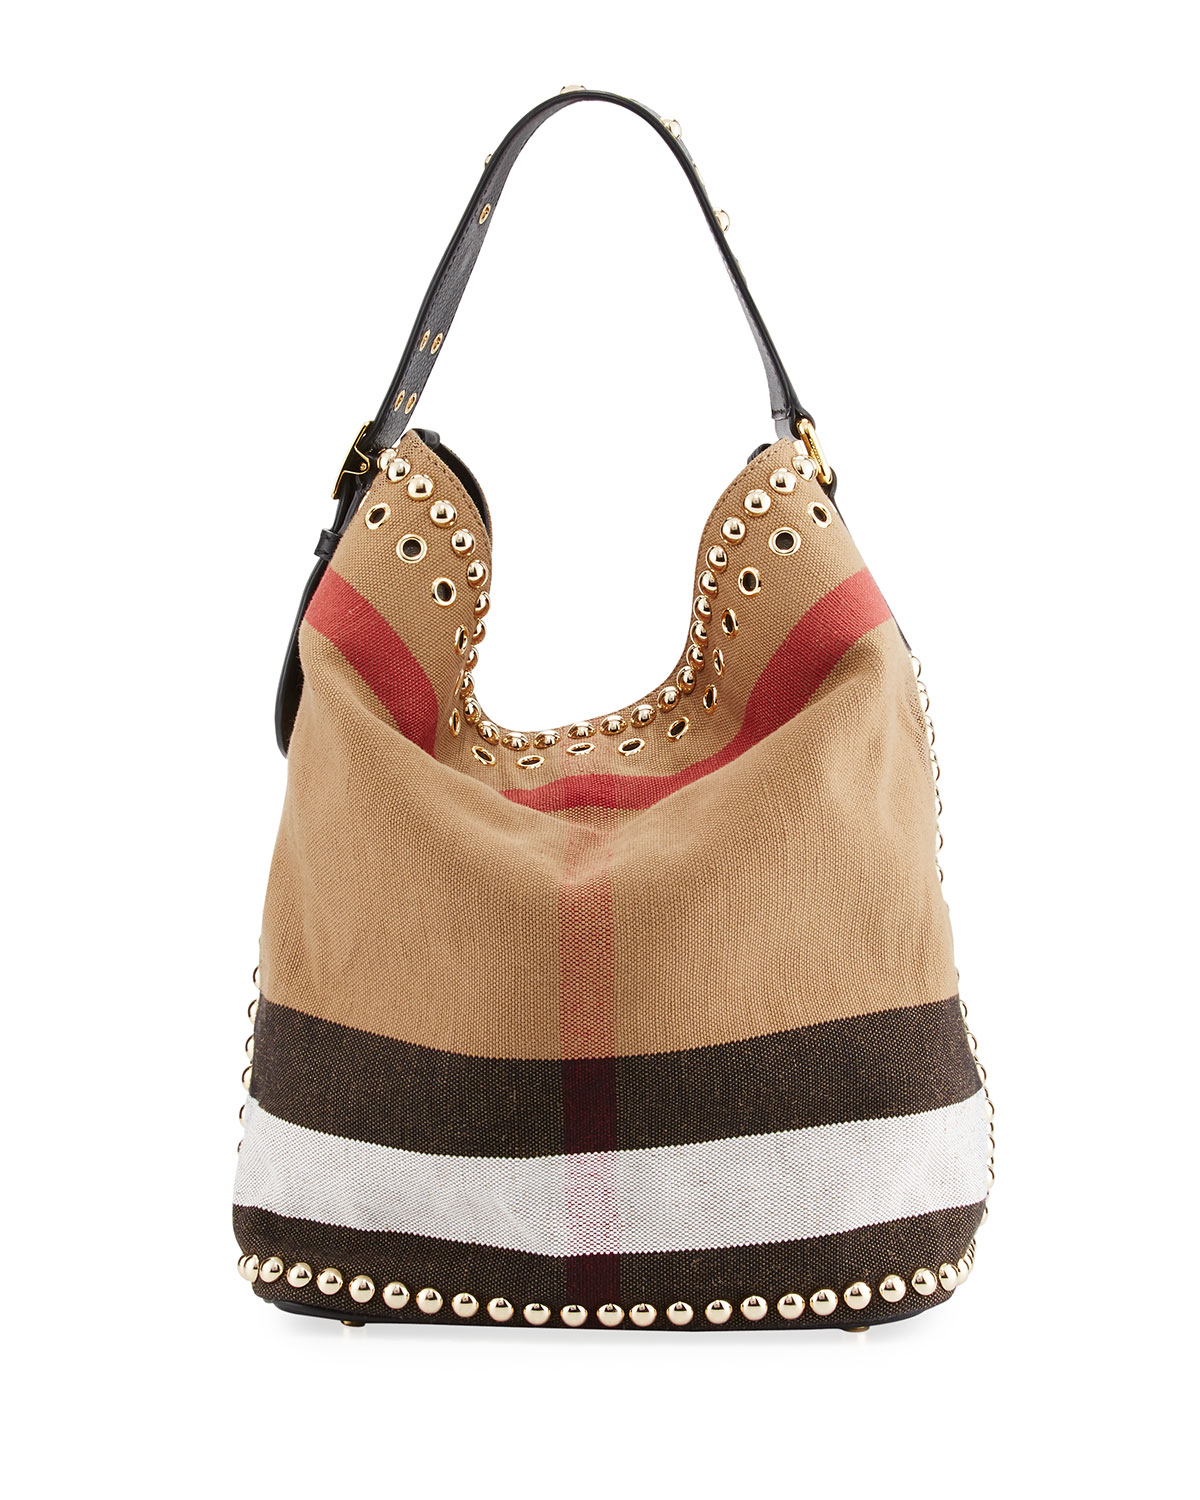 ddf5011f87d4 Burberry Ashby Medium Studded Check Canvas Hobo Bag